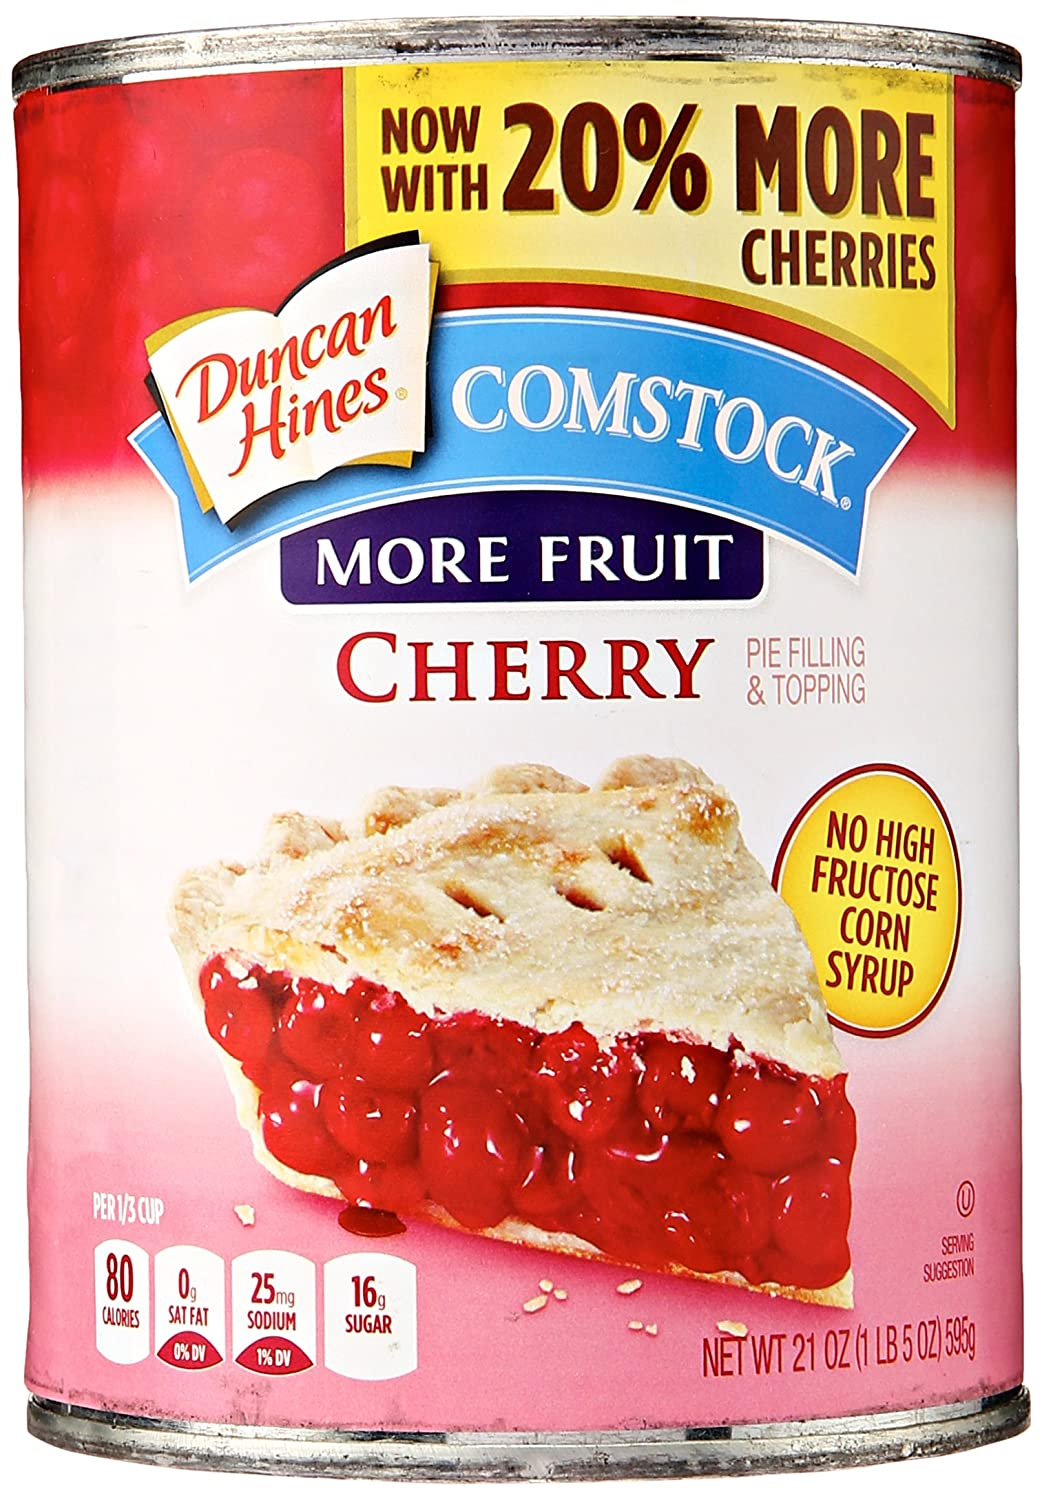 Comstock More Fruit Pie Filling & Topping, Cherry, 21 oz